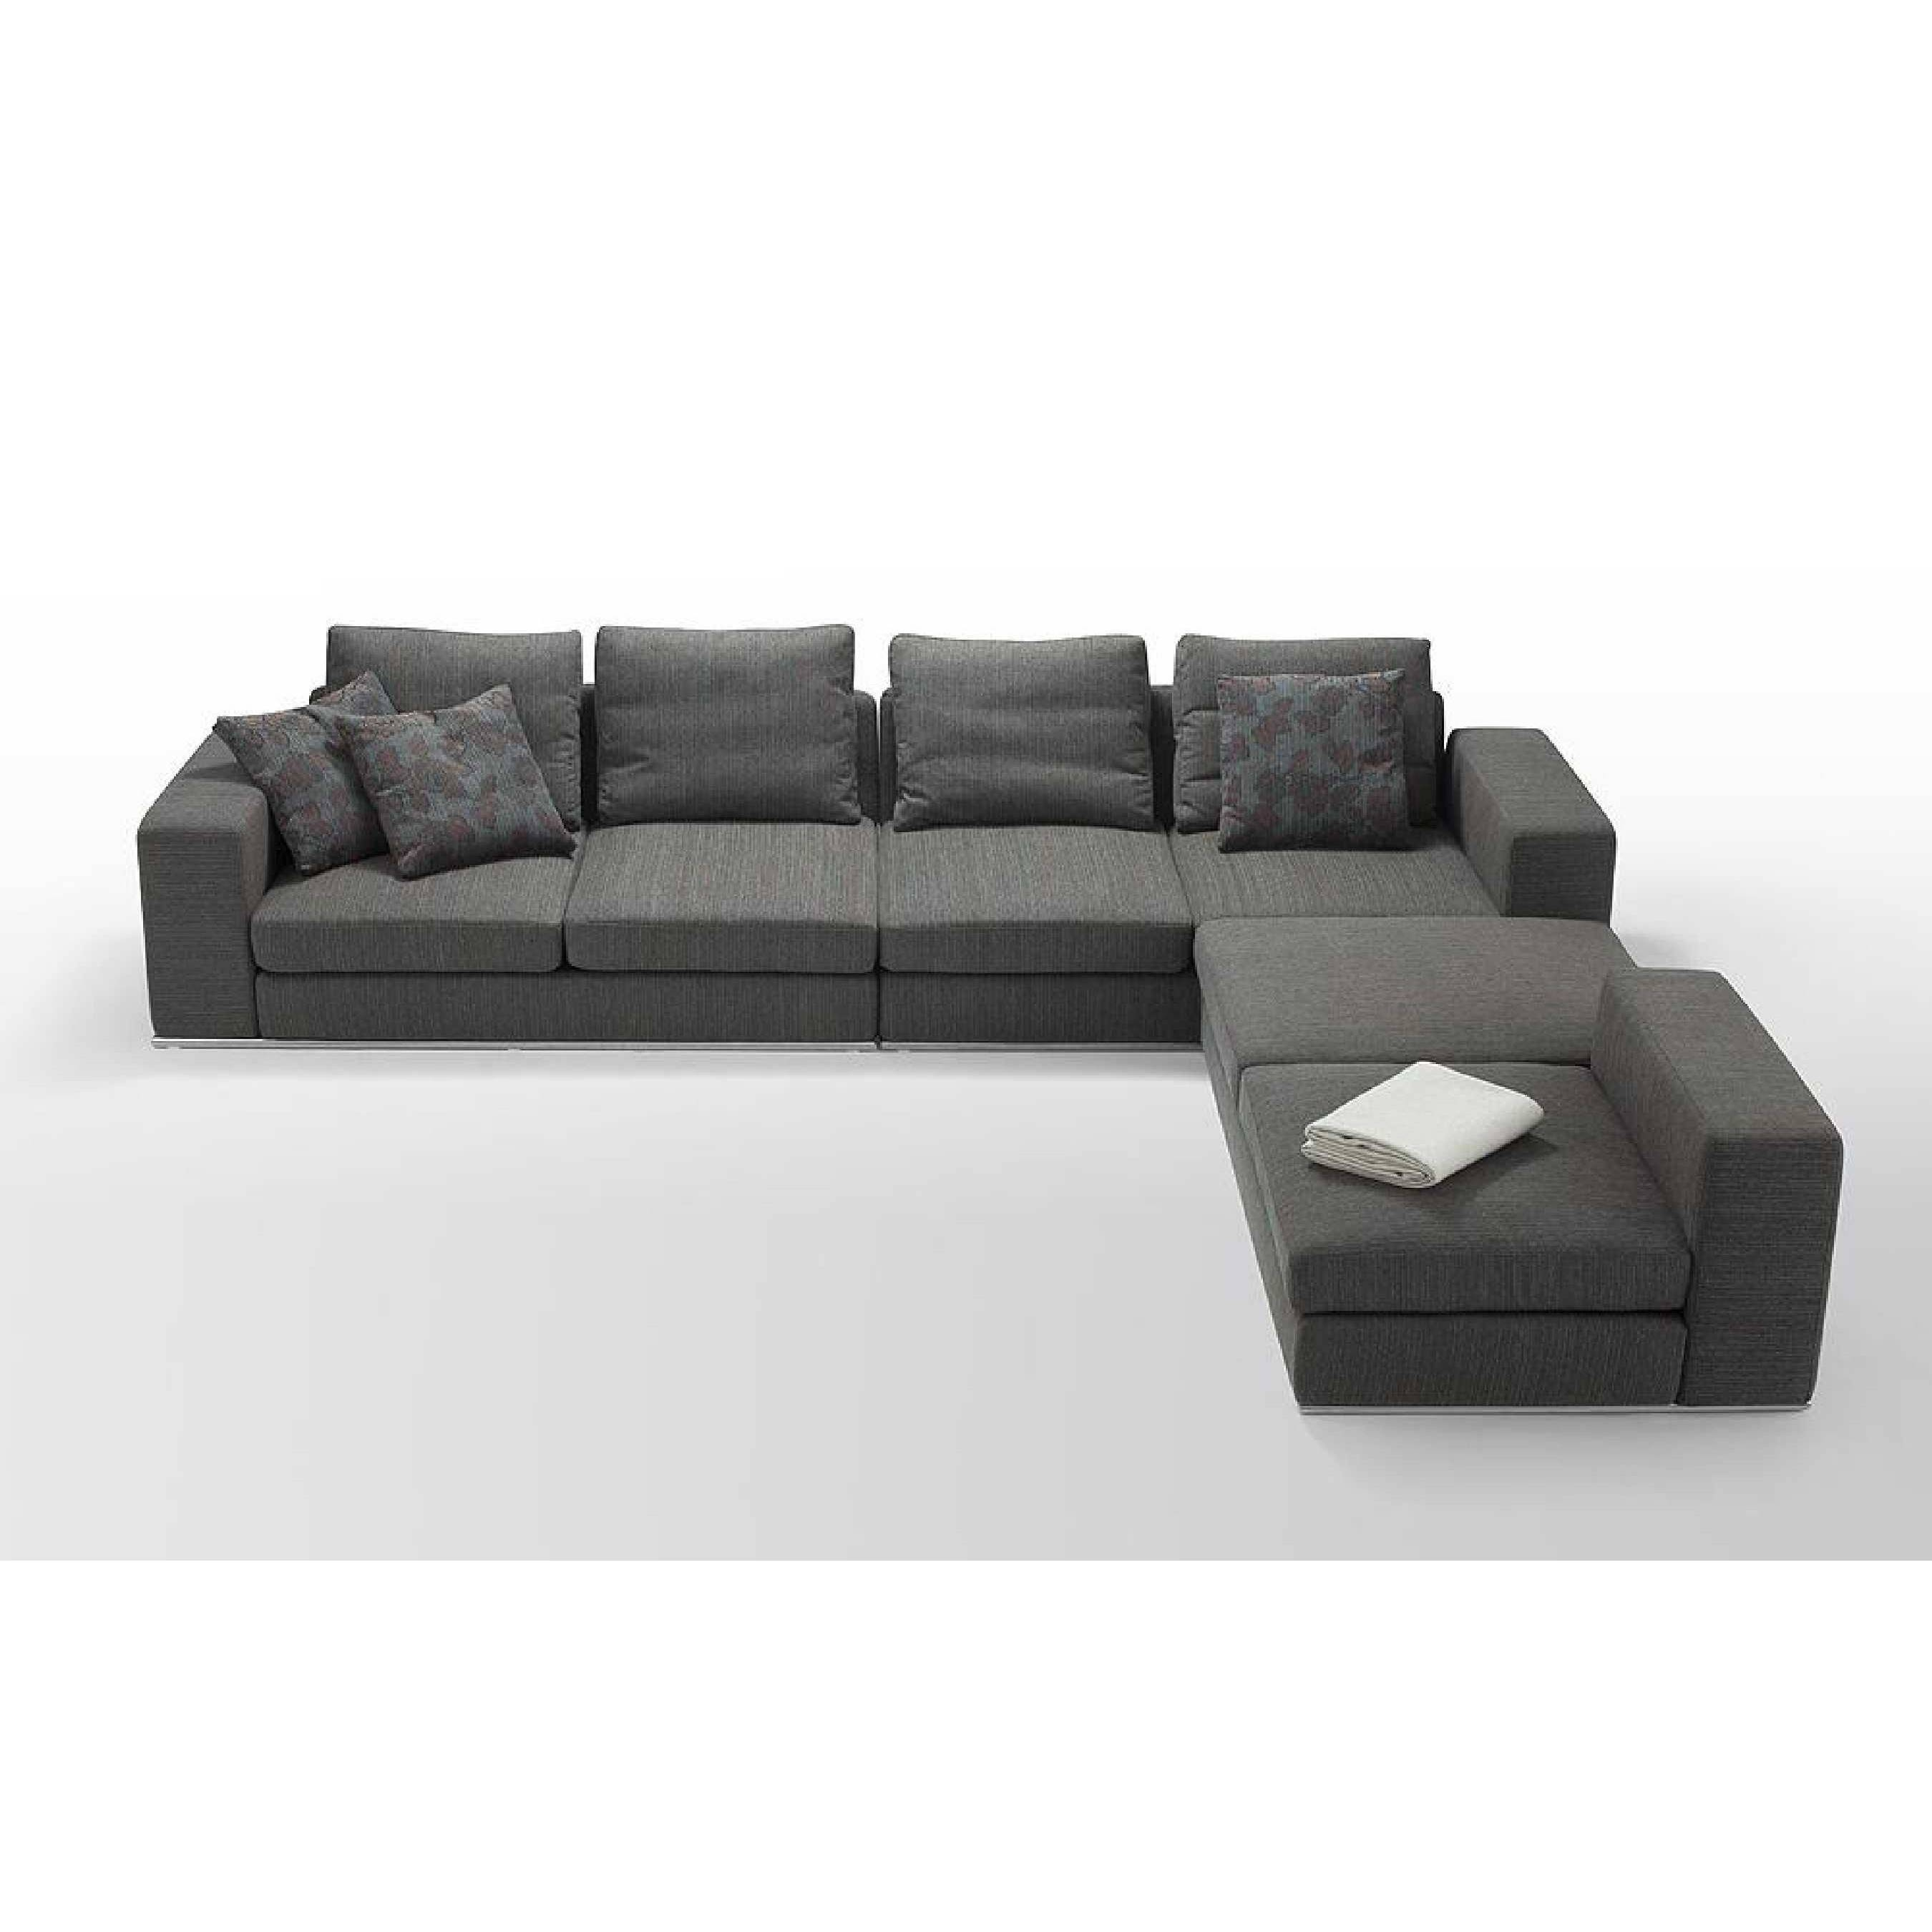 Grey Sleeper Sofa.ferris Sleeper Sofa Upholstery Grey. Ricardo throughout L Shaped Sectional Sleeper Sofa (Image 13 of 25)